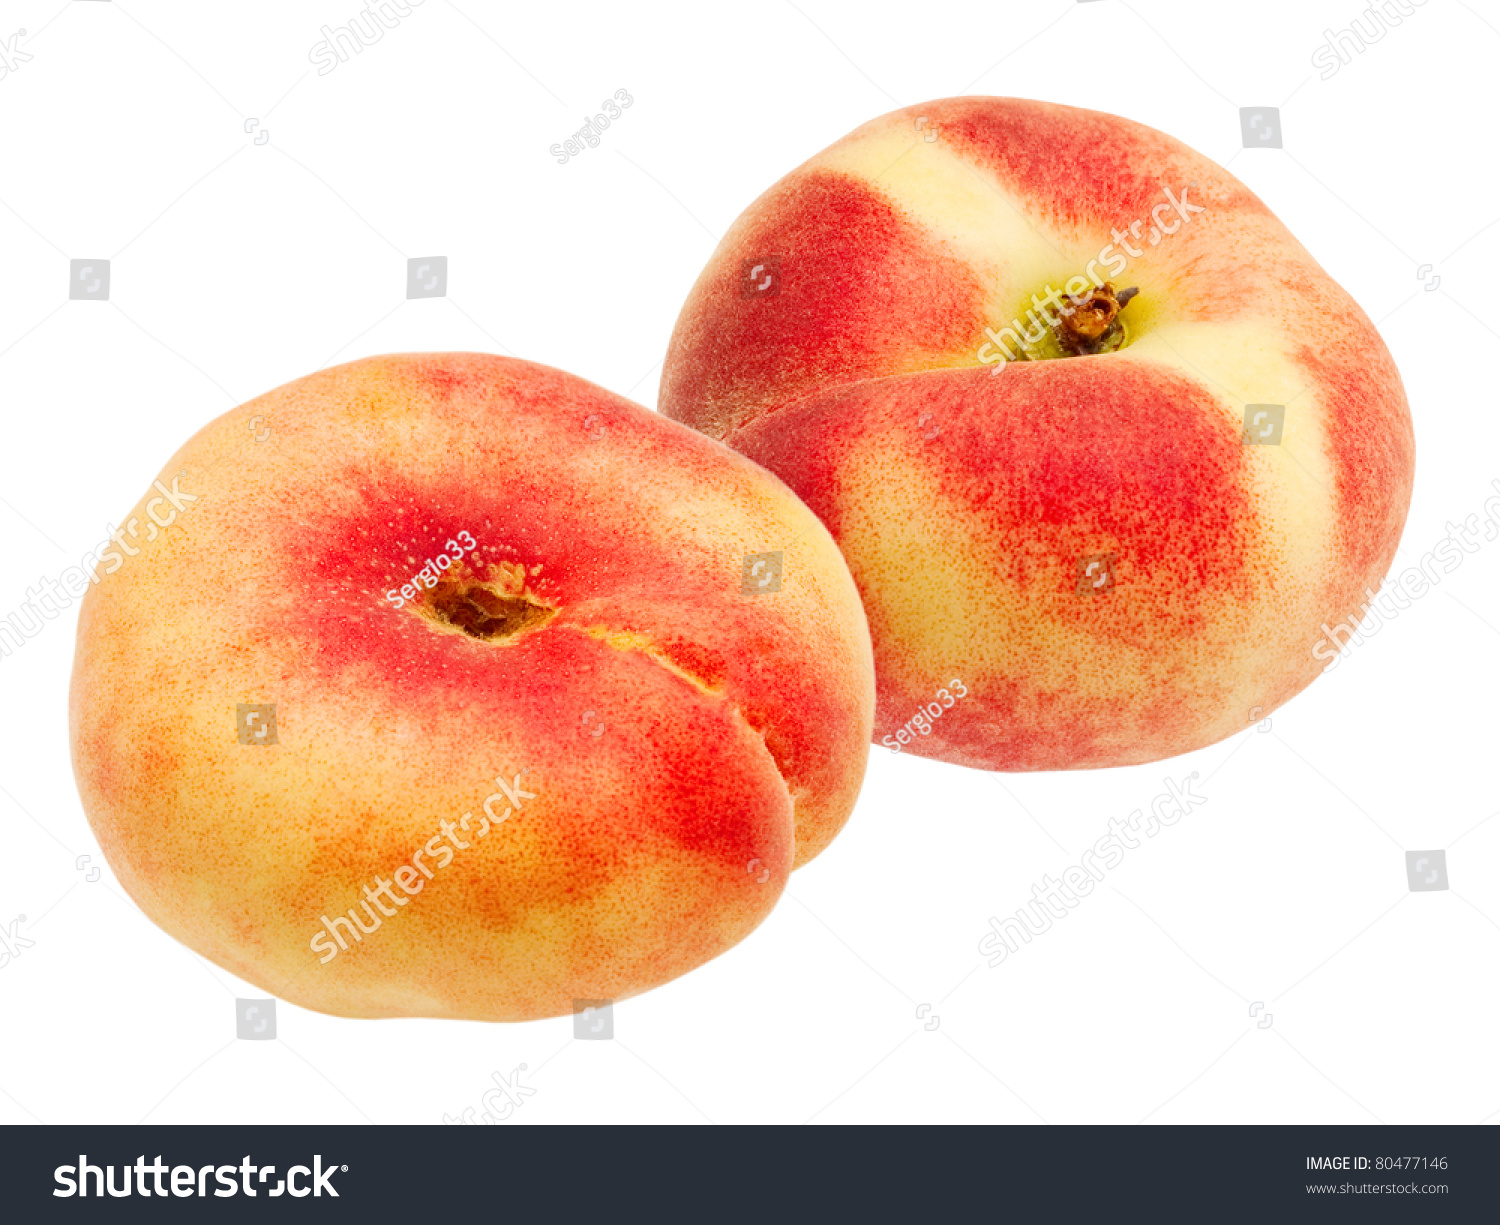 peach isolated on white background #80477146